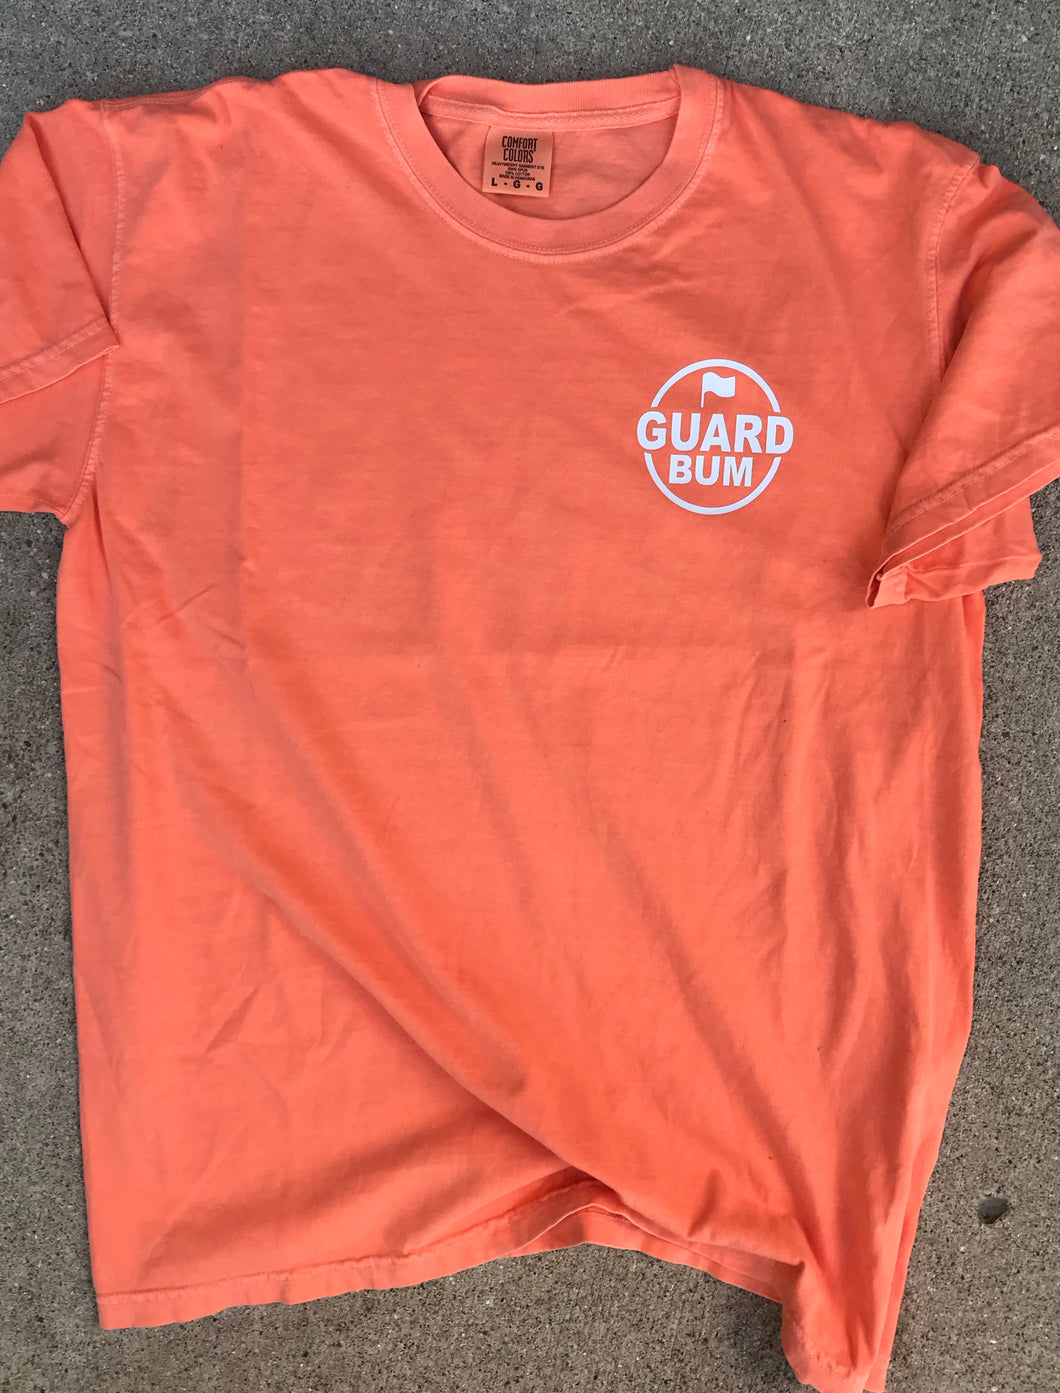 Guard Bum Logo T-shirt in 3 colors